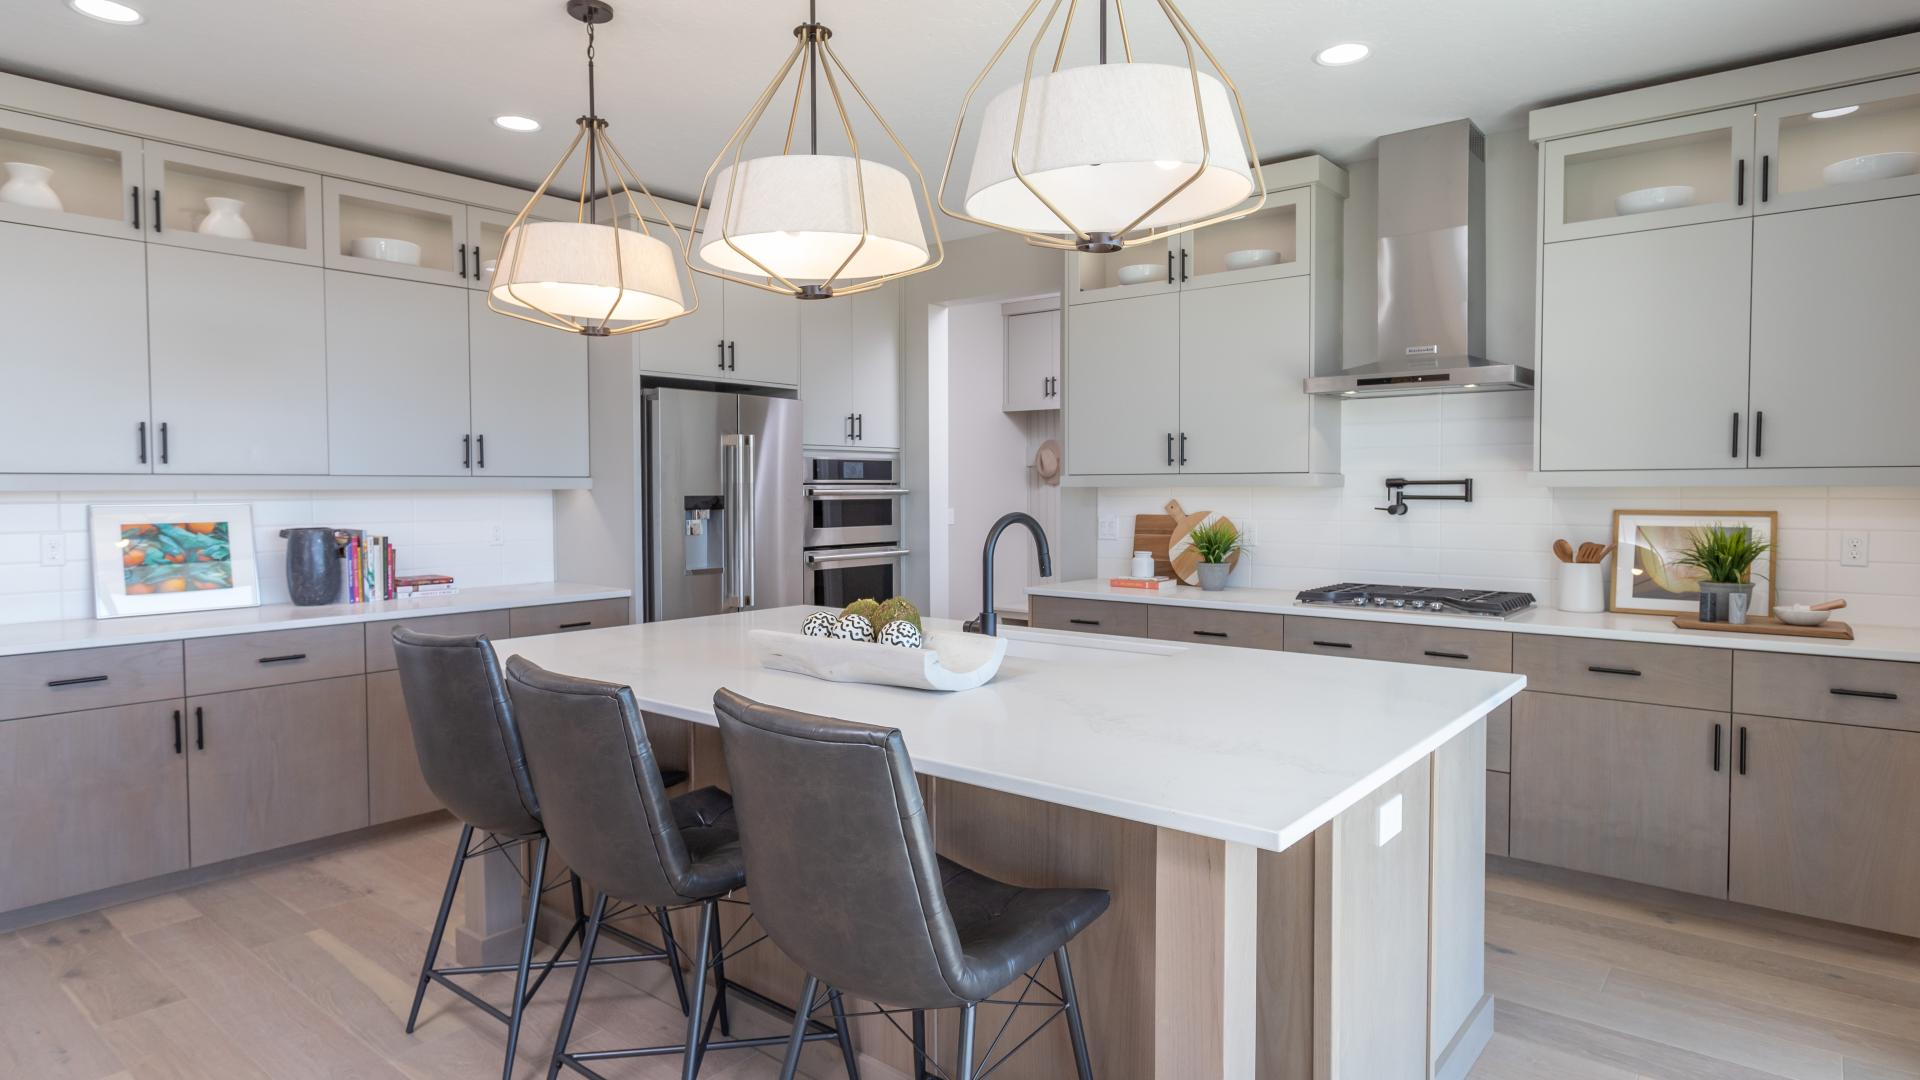 Gourmet kitchen with extra counterspace for entertaining